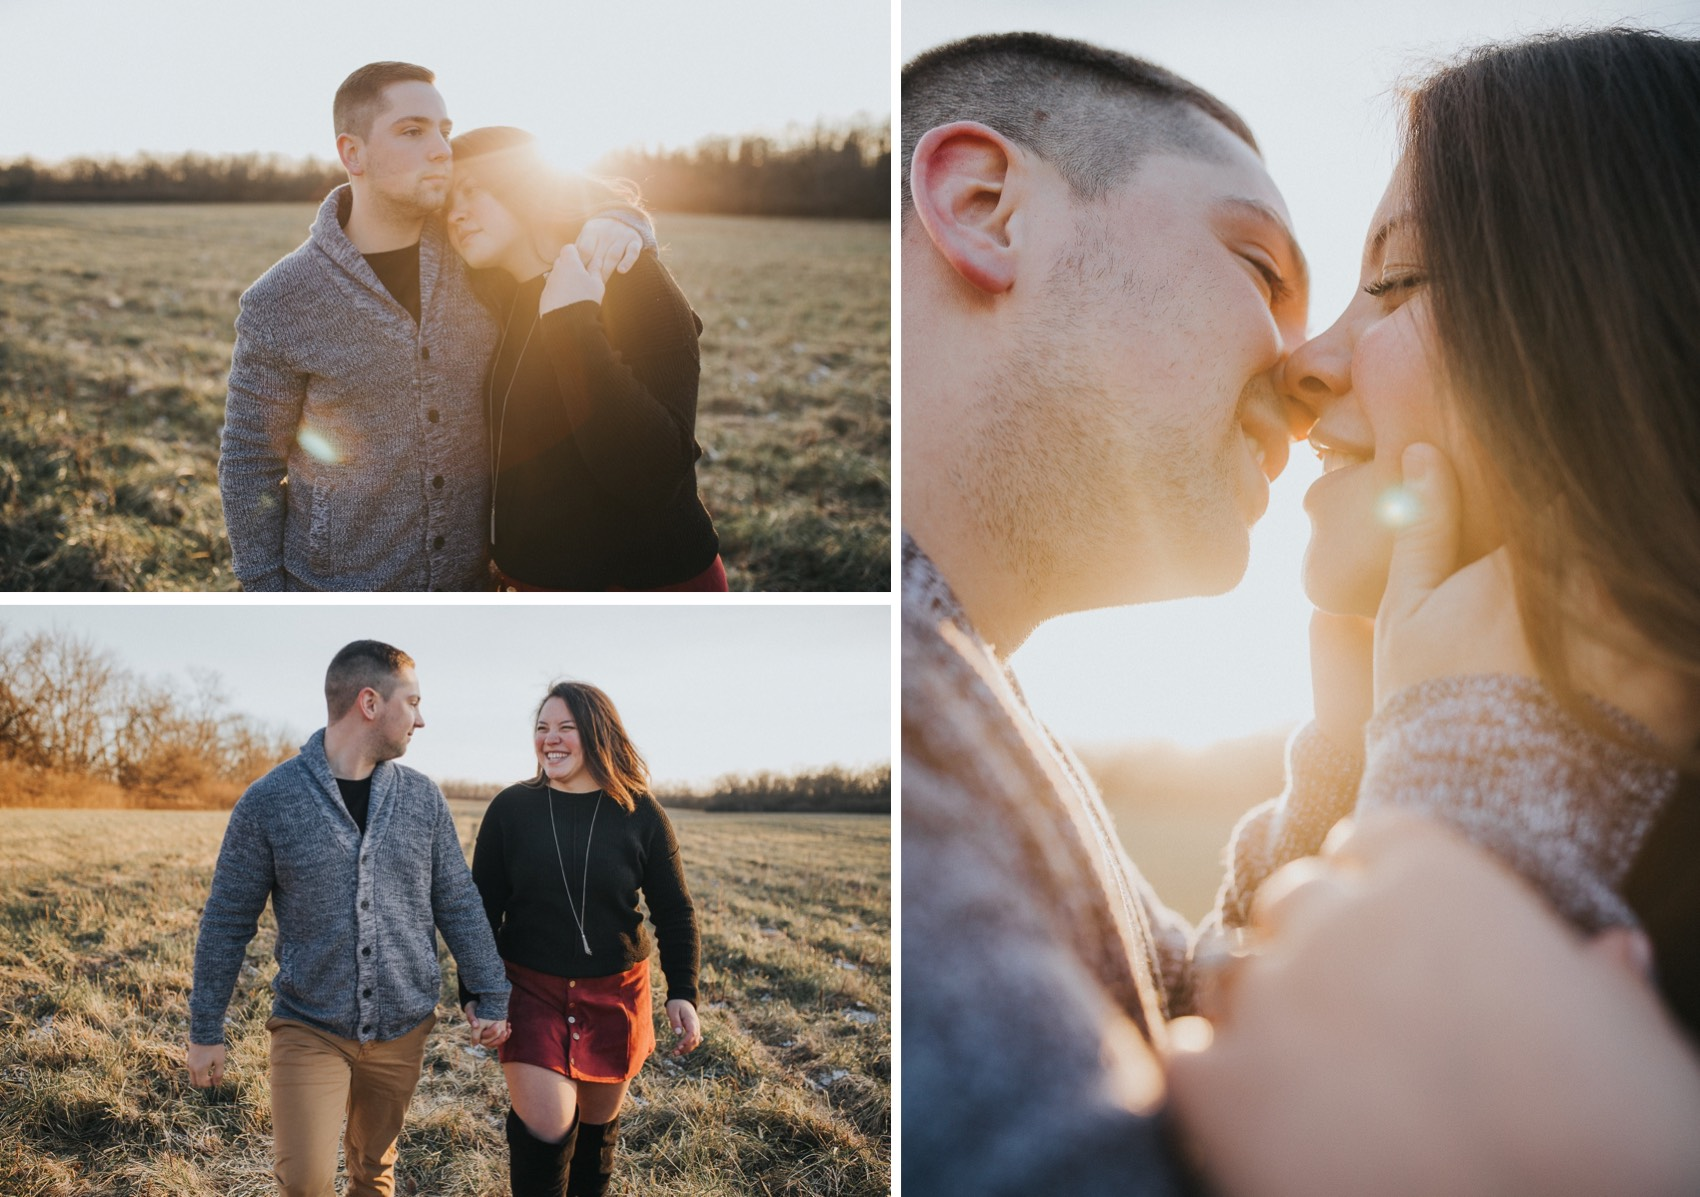 A couple having fun during their sunset engagement session.